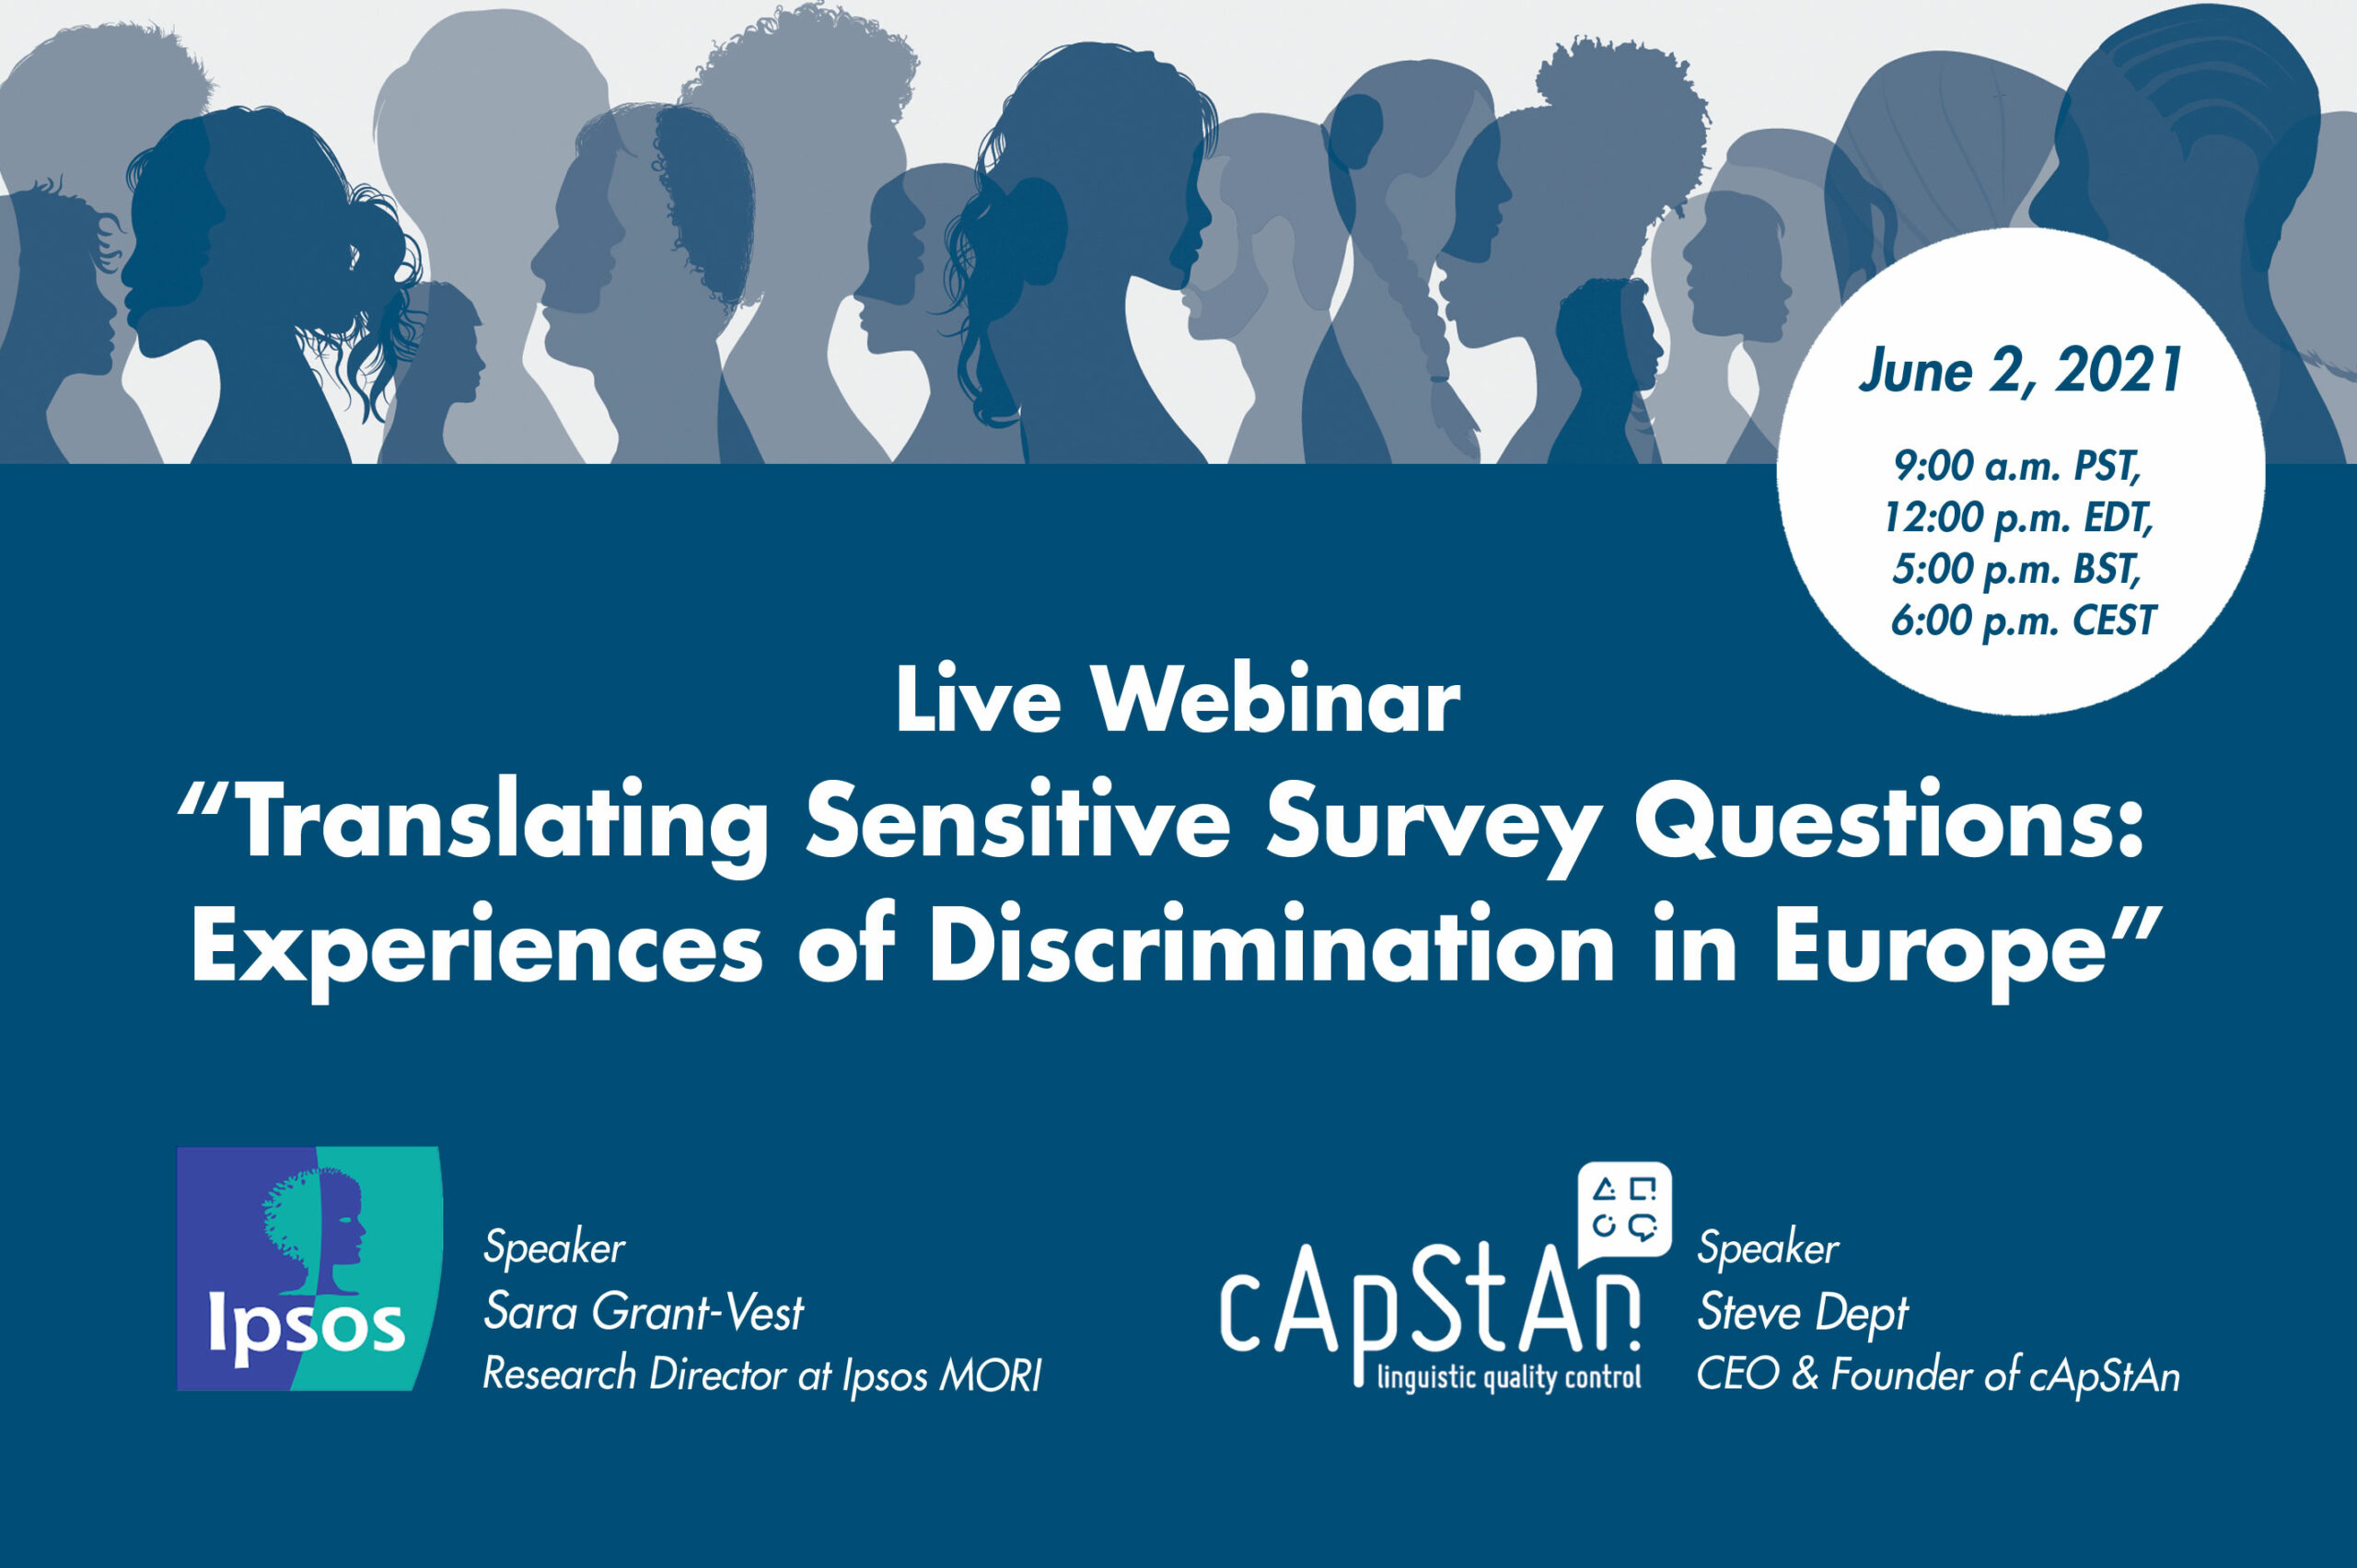 Translating Sensitive Survey Questions:  Experiences of Discrimination in Europe